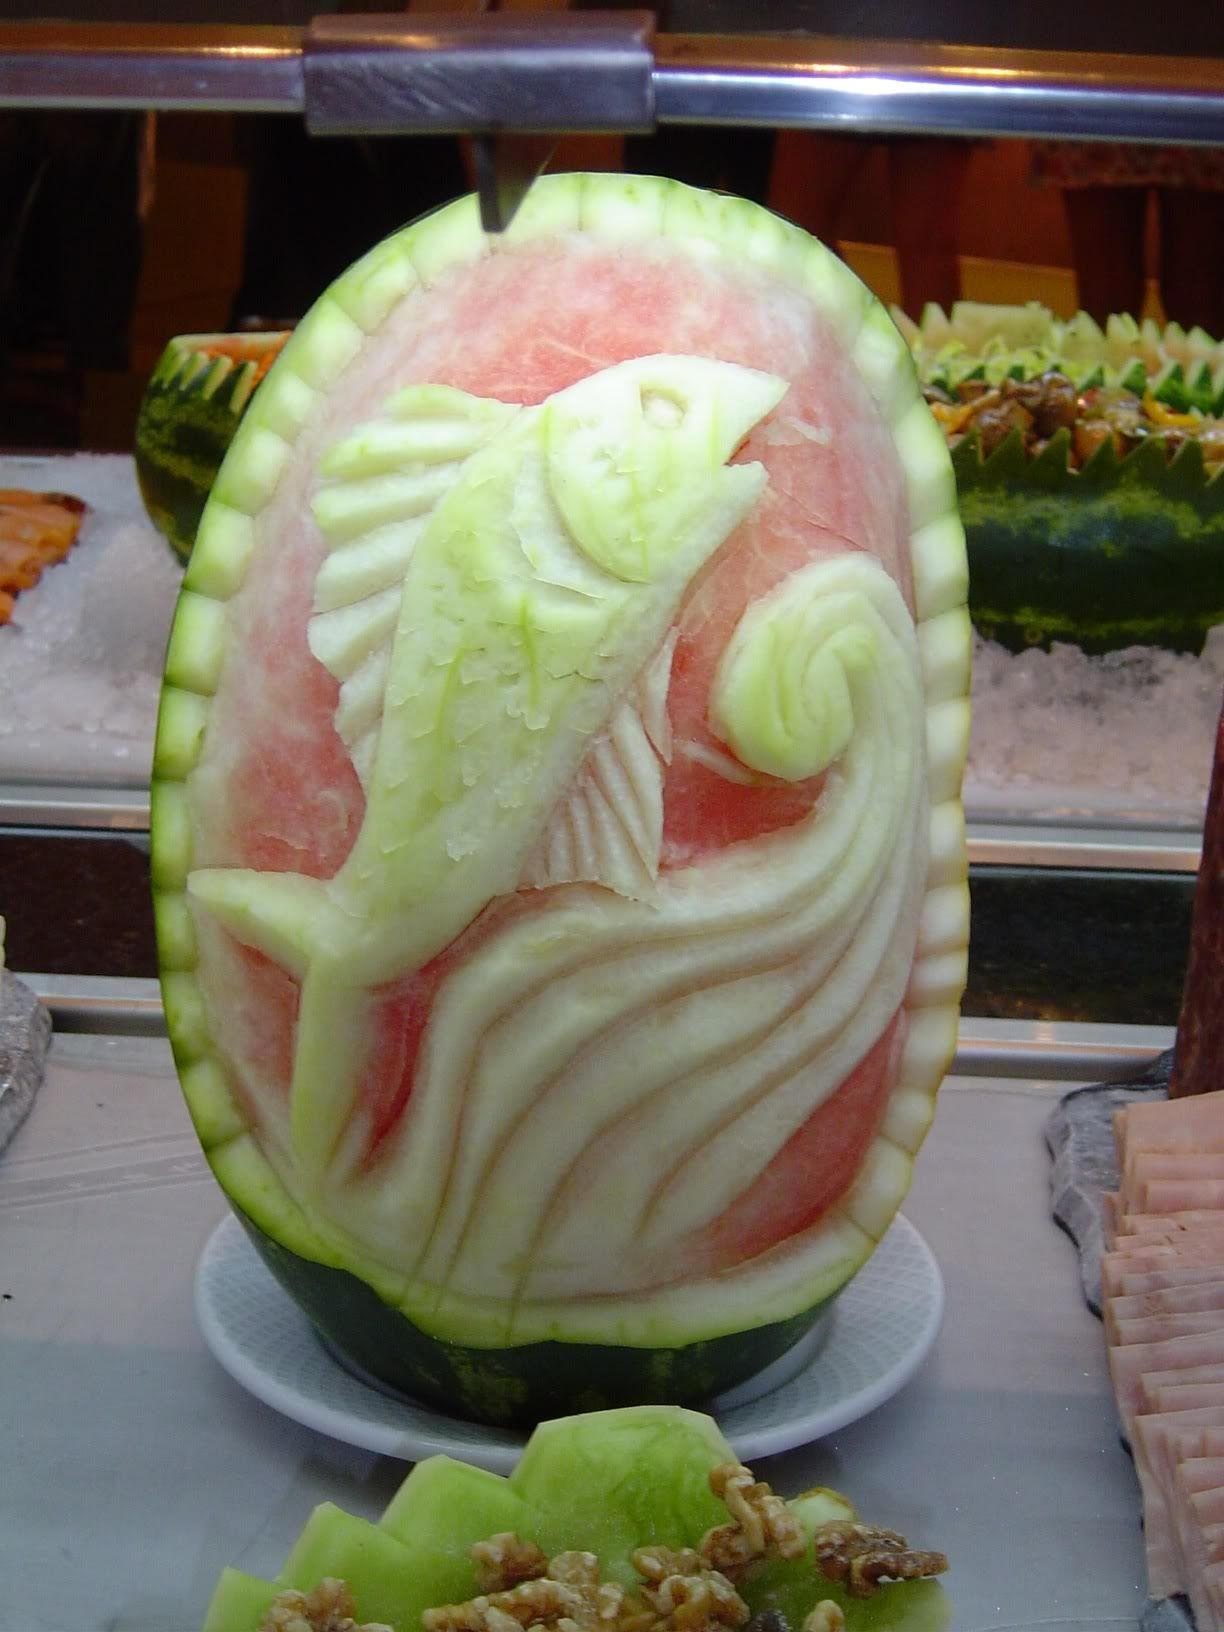 Artwork pictures cool watermelon art food